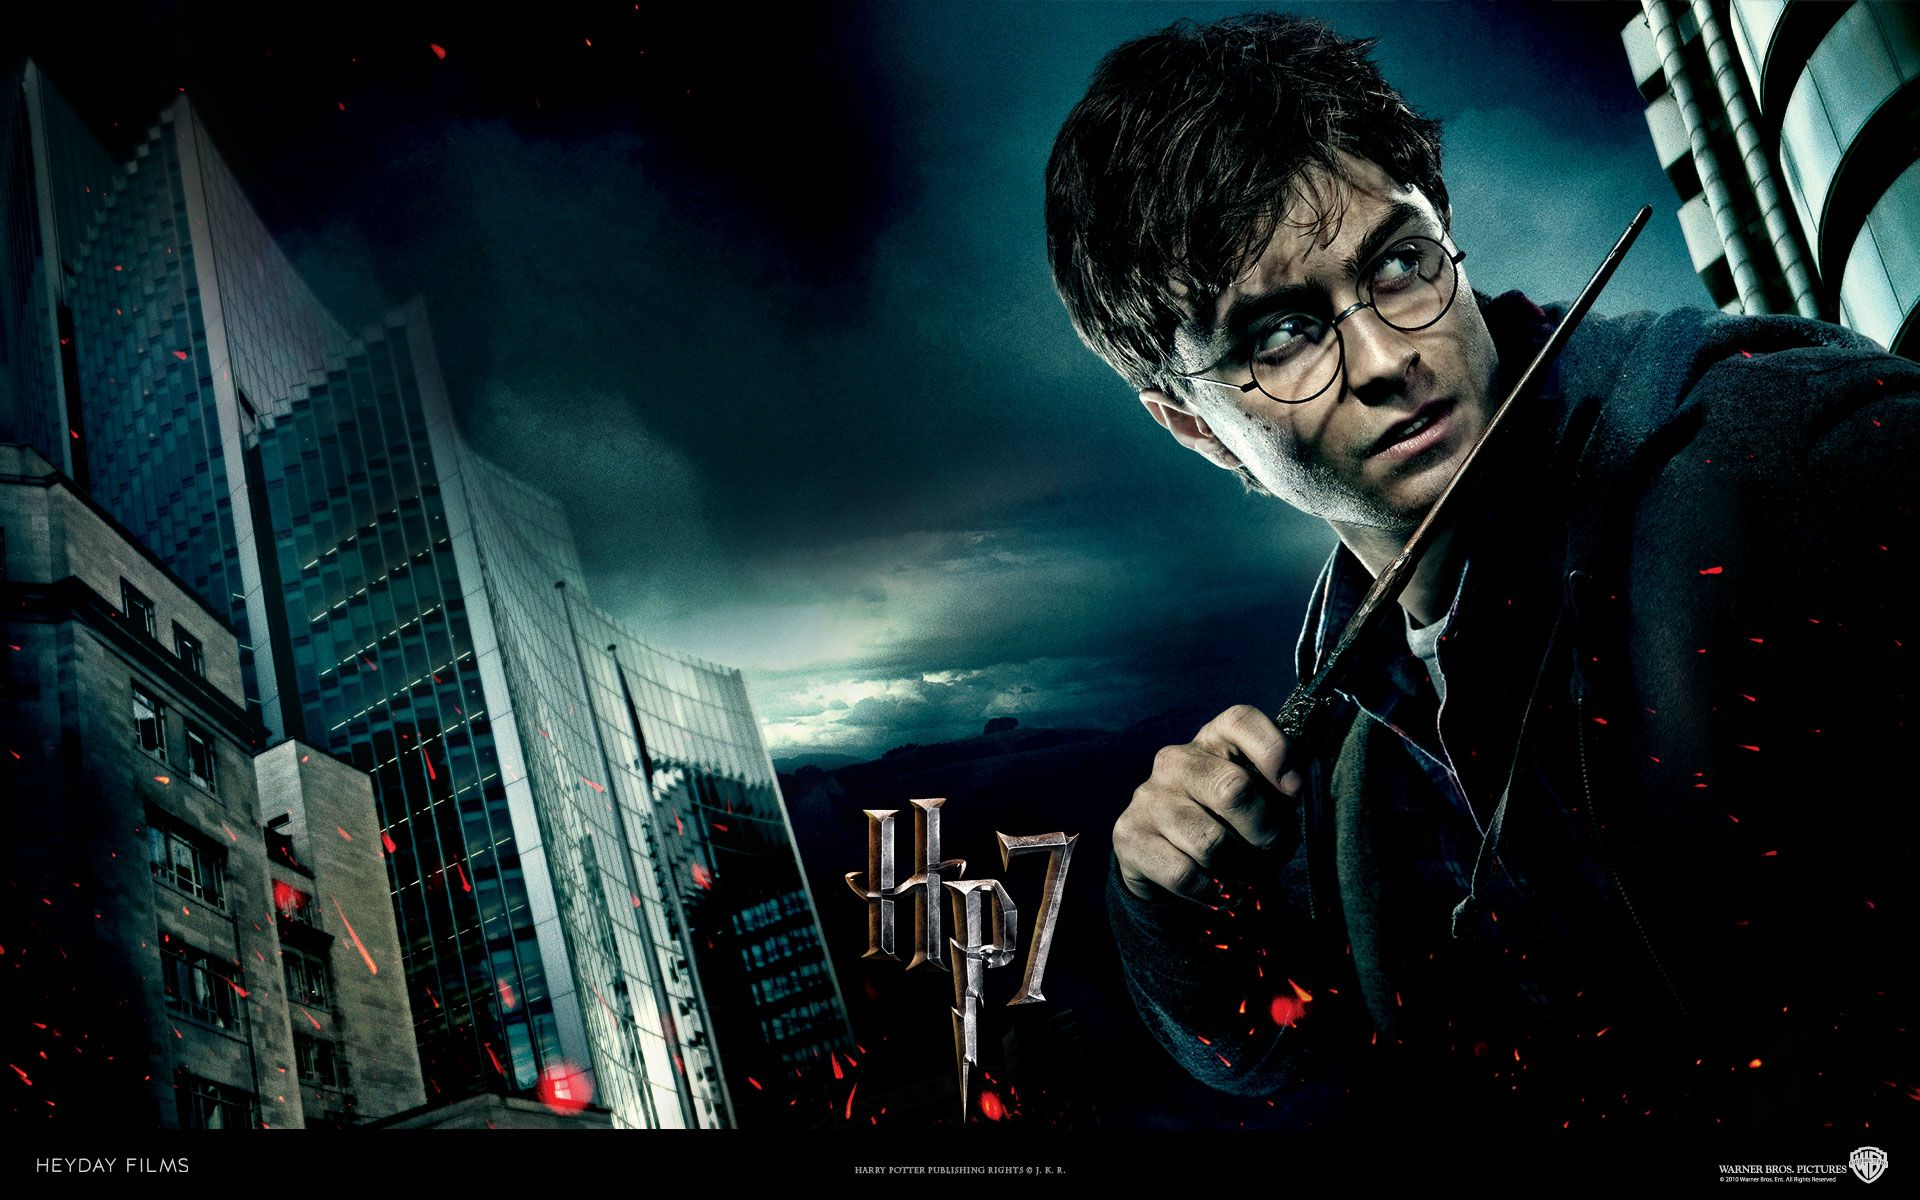 Harry Potter Hd Wallpapers Top Free Harry Potter Hd Backgrounds Wallpaperaccess